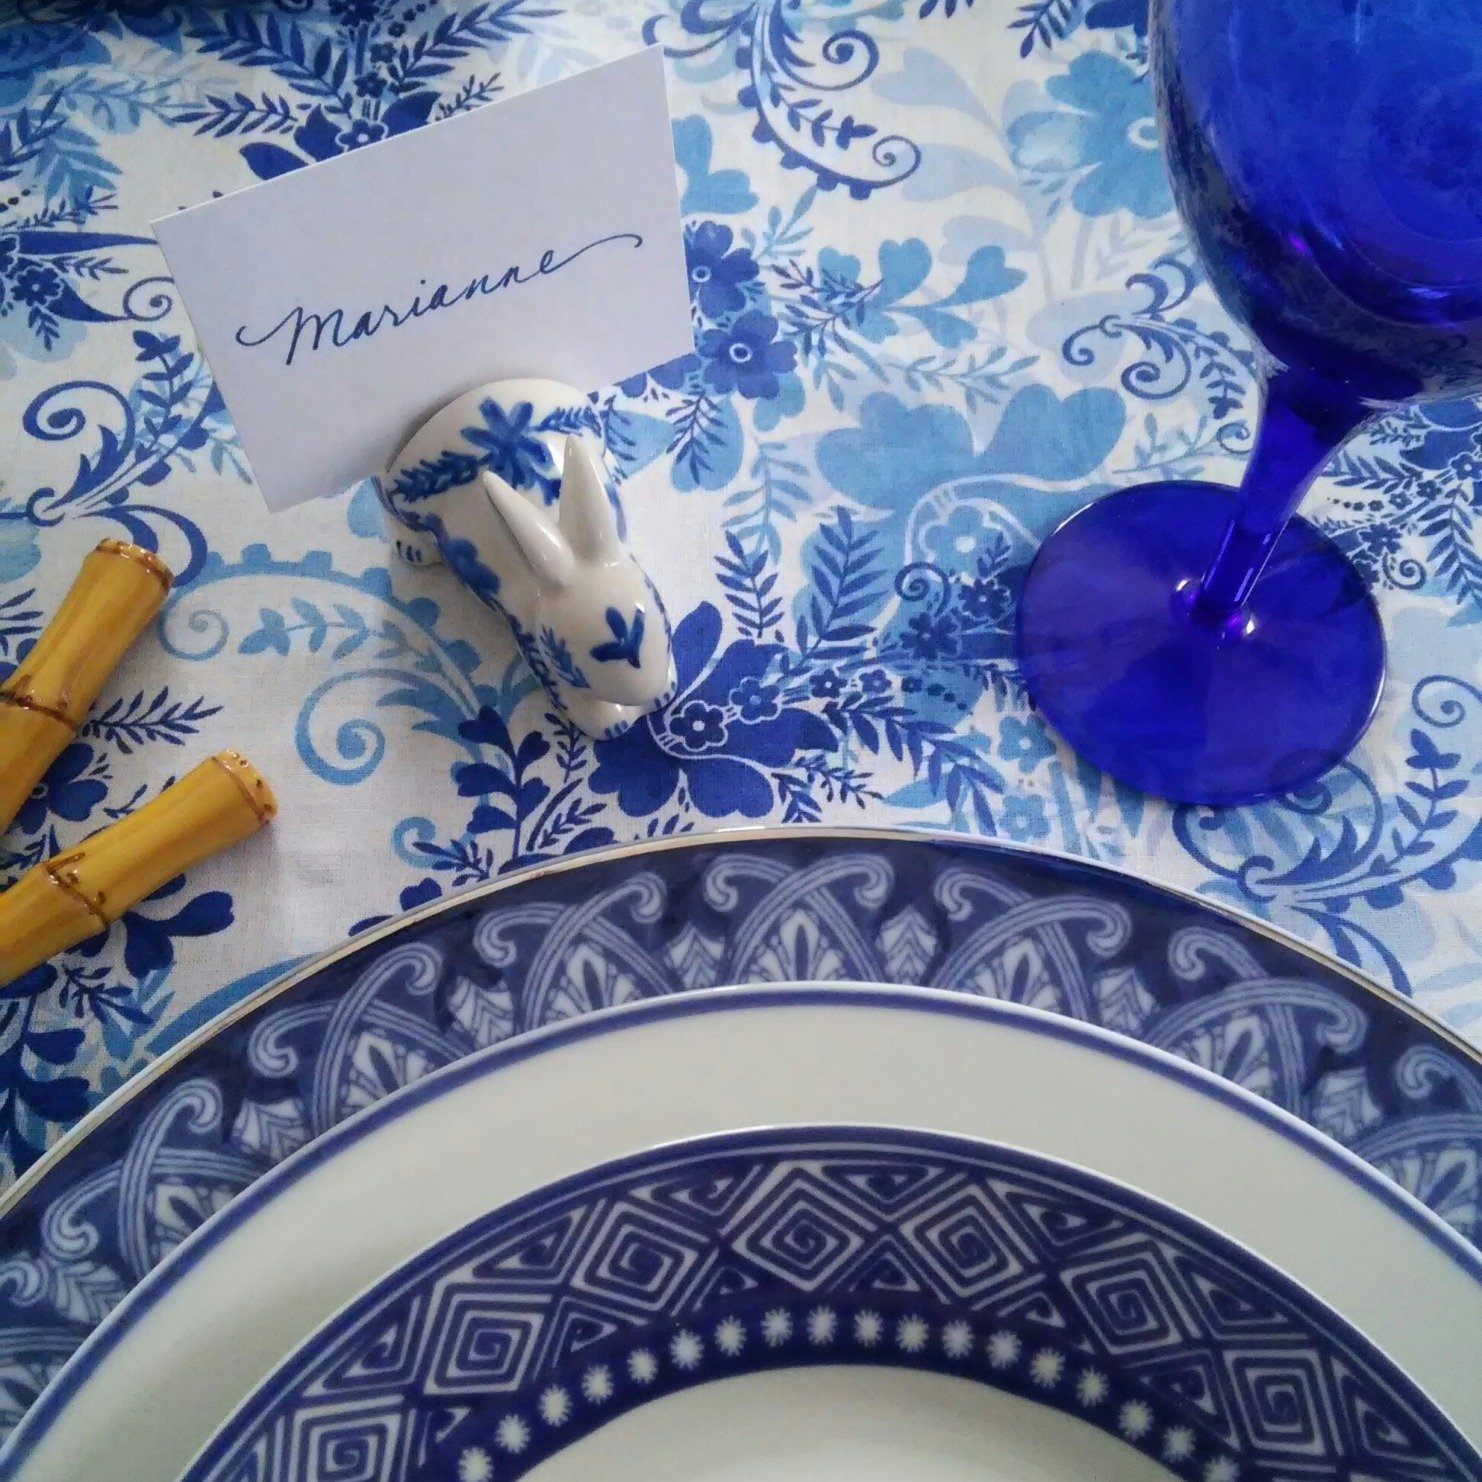 Hand-Painted Blue and White Porcelain Chinoiserie Rabbit Place Card Holders (Set of 4)